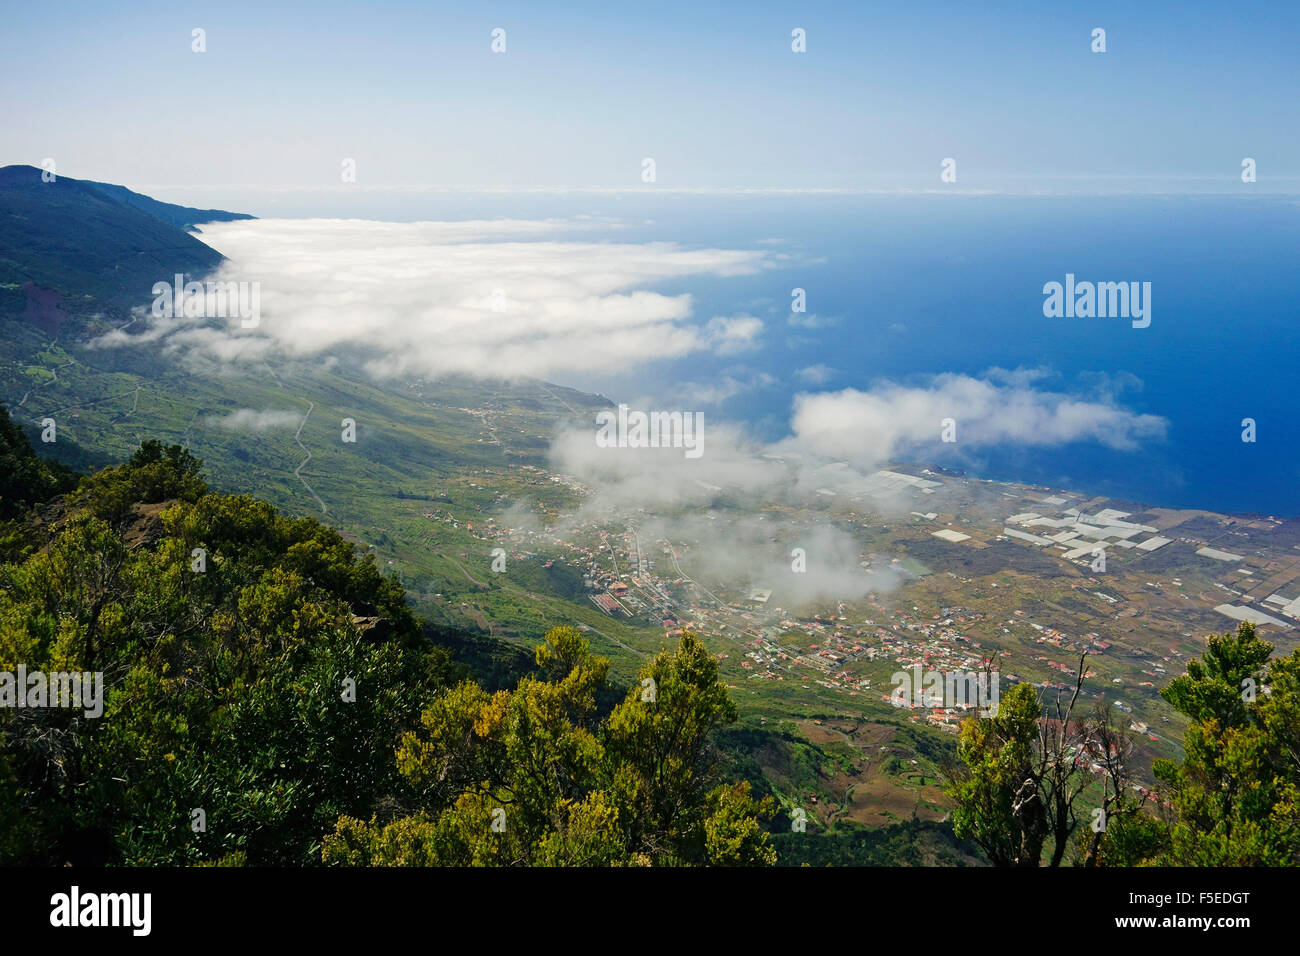 Las Puntas and El Golfo Bay, seen from Tibataje, El Hierro, Canary Islands, Spain, Atlantic, Europe Stock Photo